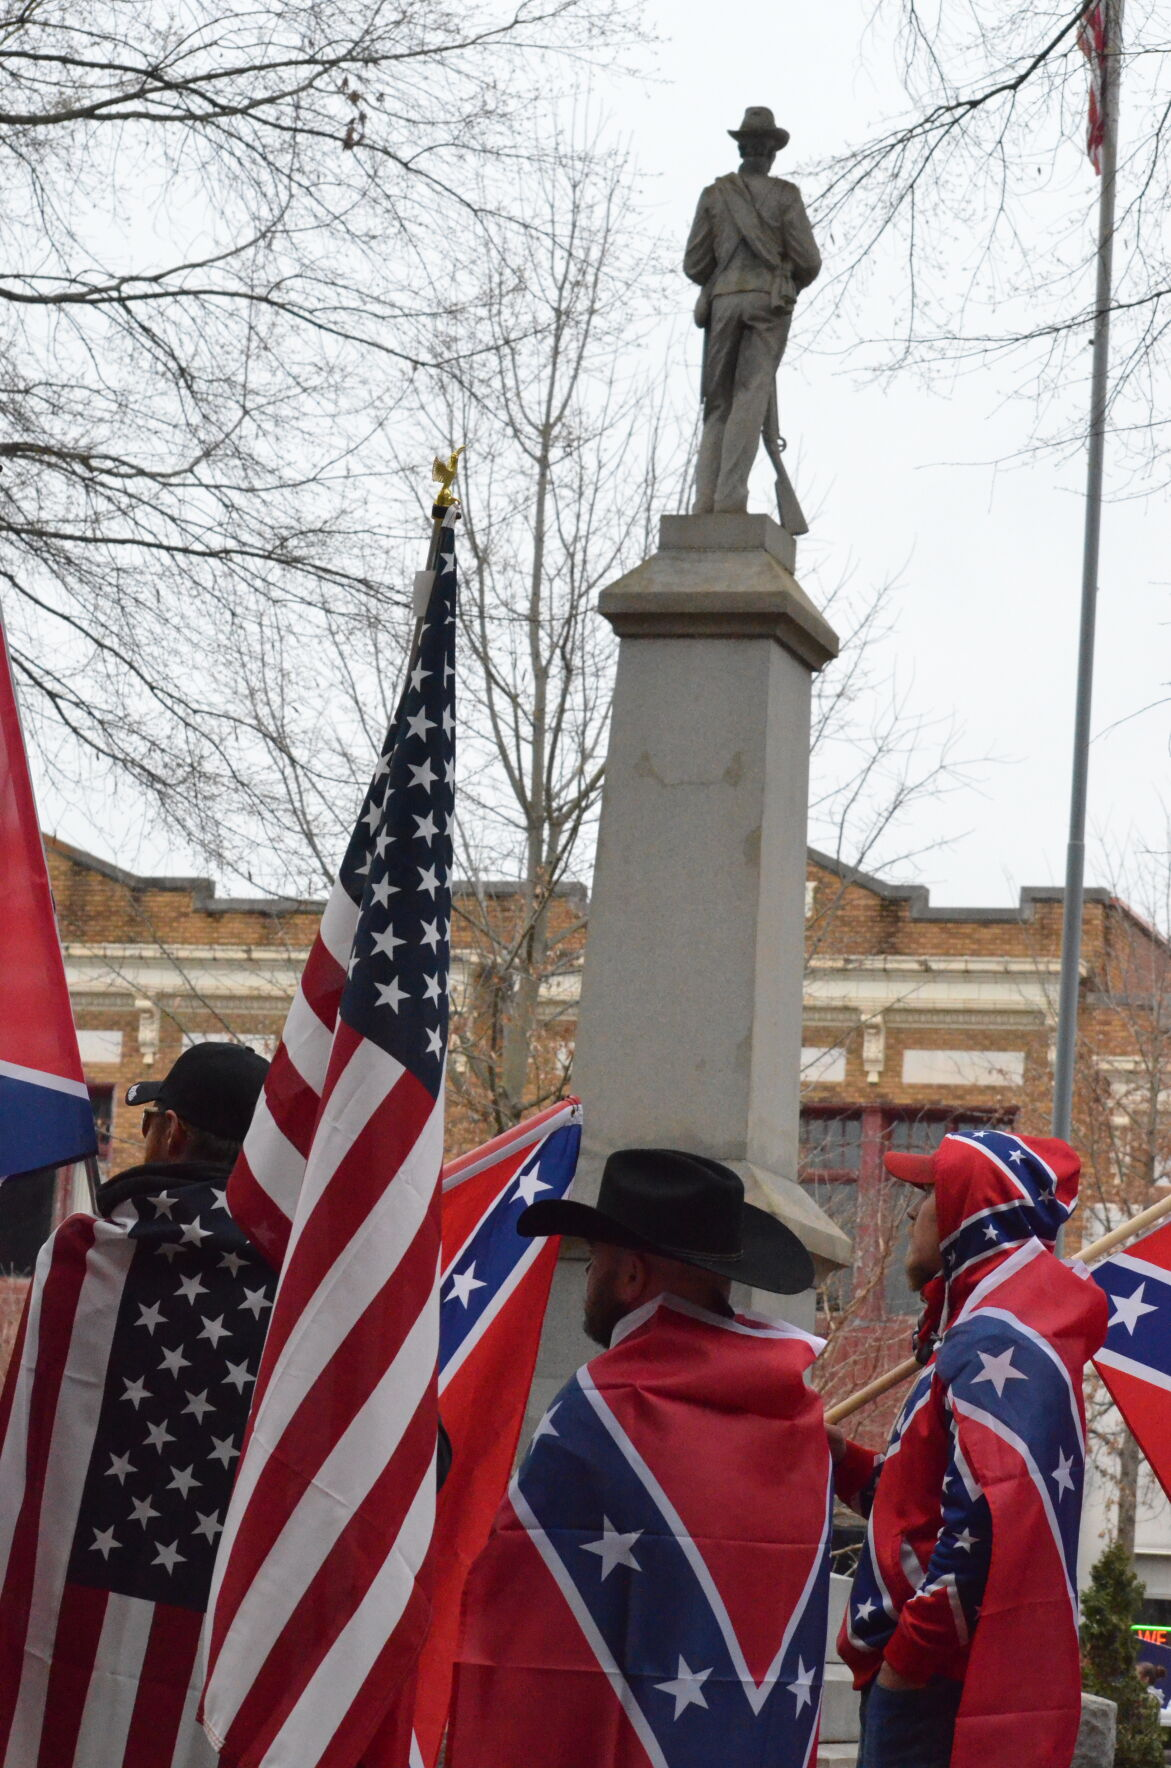 Men draped in the Confederate Flag stand behind the Iredell County Confederate Memorial at the Iredell County Government Center in Statesville on Tuesday.